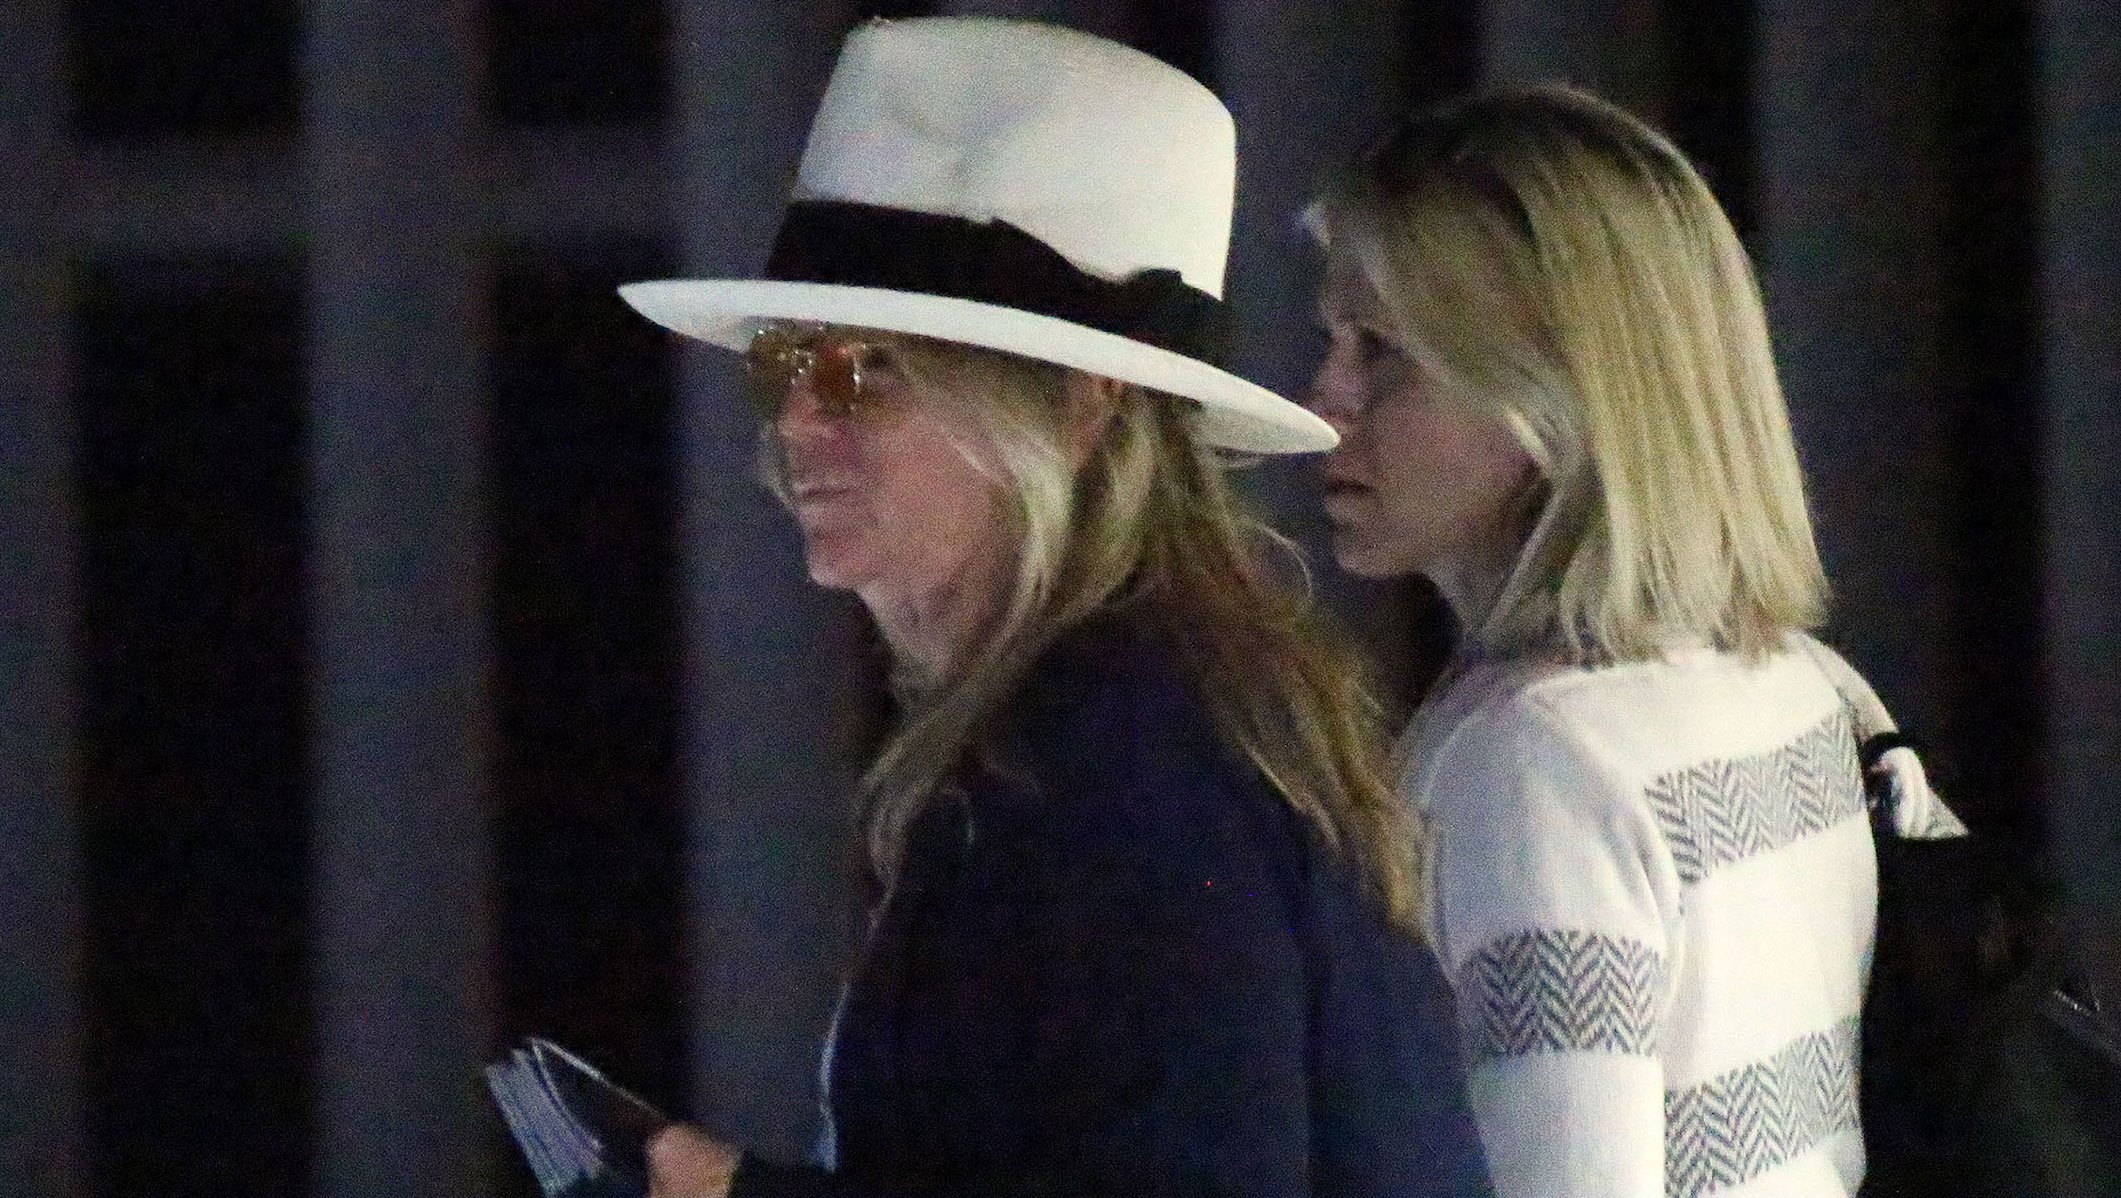 Jennifer Aniston Arrives in Cabo After Emergency Plane Landing